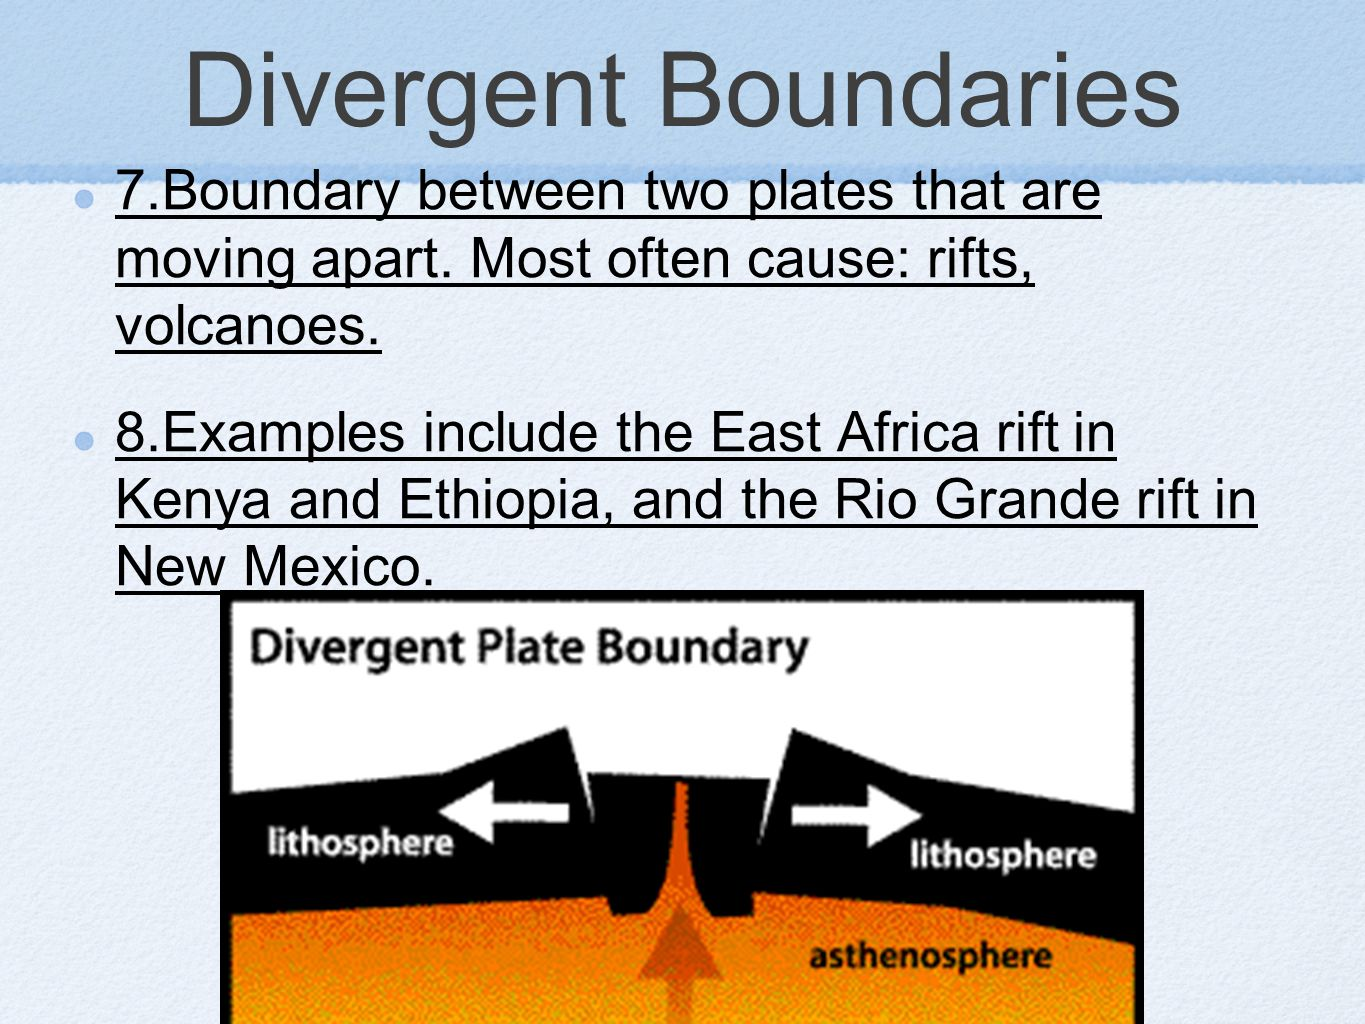 divergent boundaries Divergent plate boundary definition at dictionarycom, a free online dictionary with pronunciation, synonyms and translation look it up now.